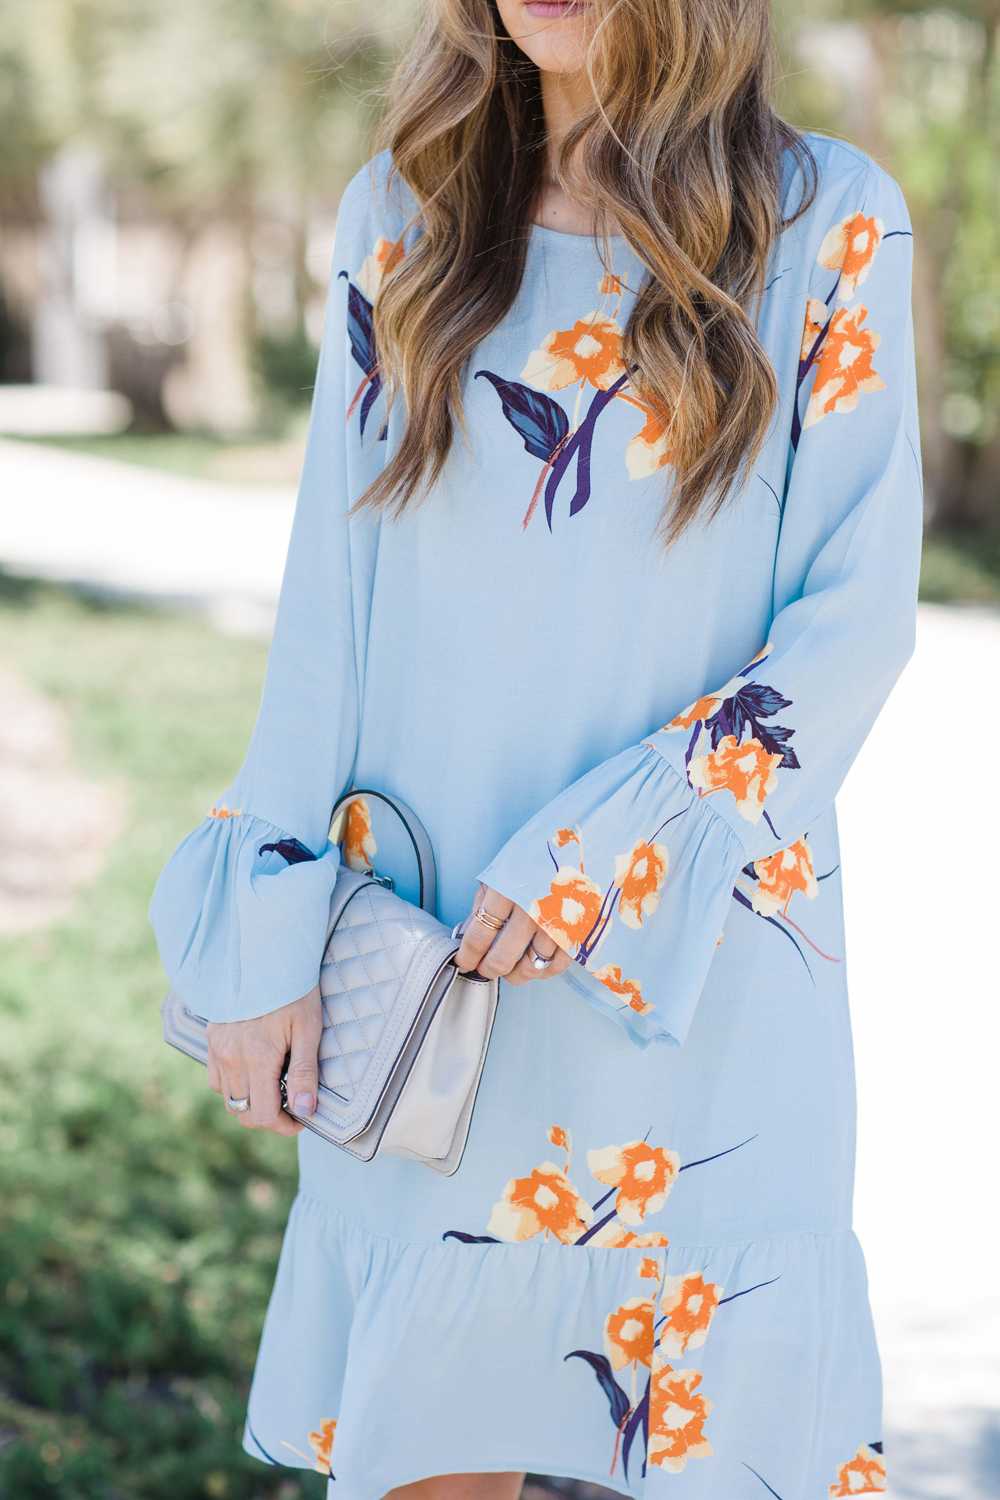 Merrick's Art Light Blue Floral Dress